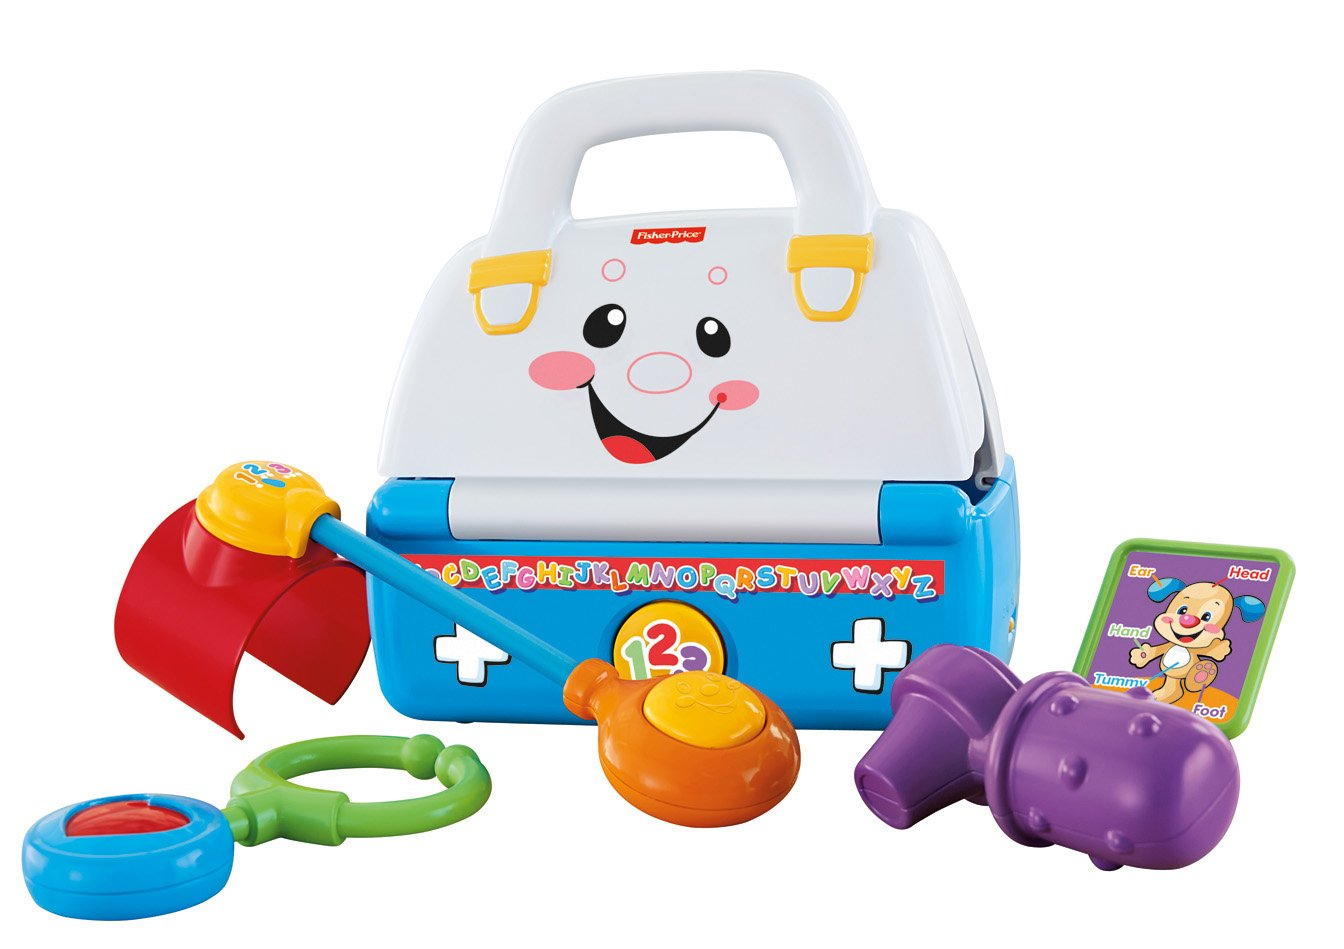 Fisher-Price Laugh & Learn Sing-a-Song Med Kit   B00F6N0M8G